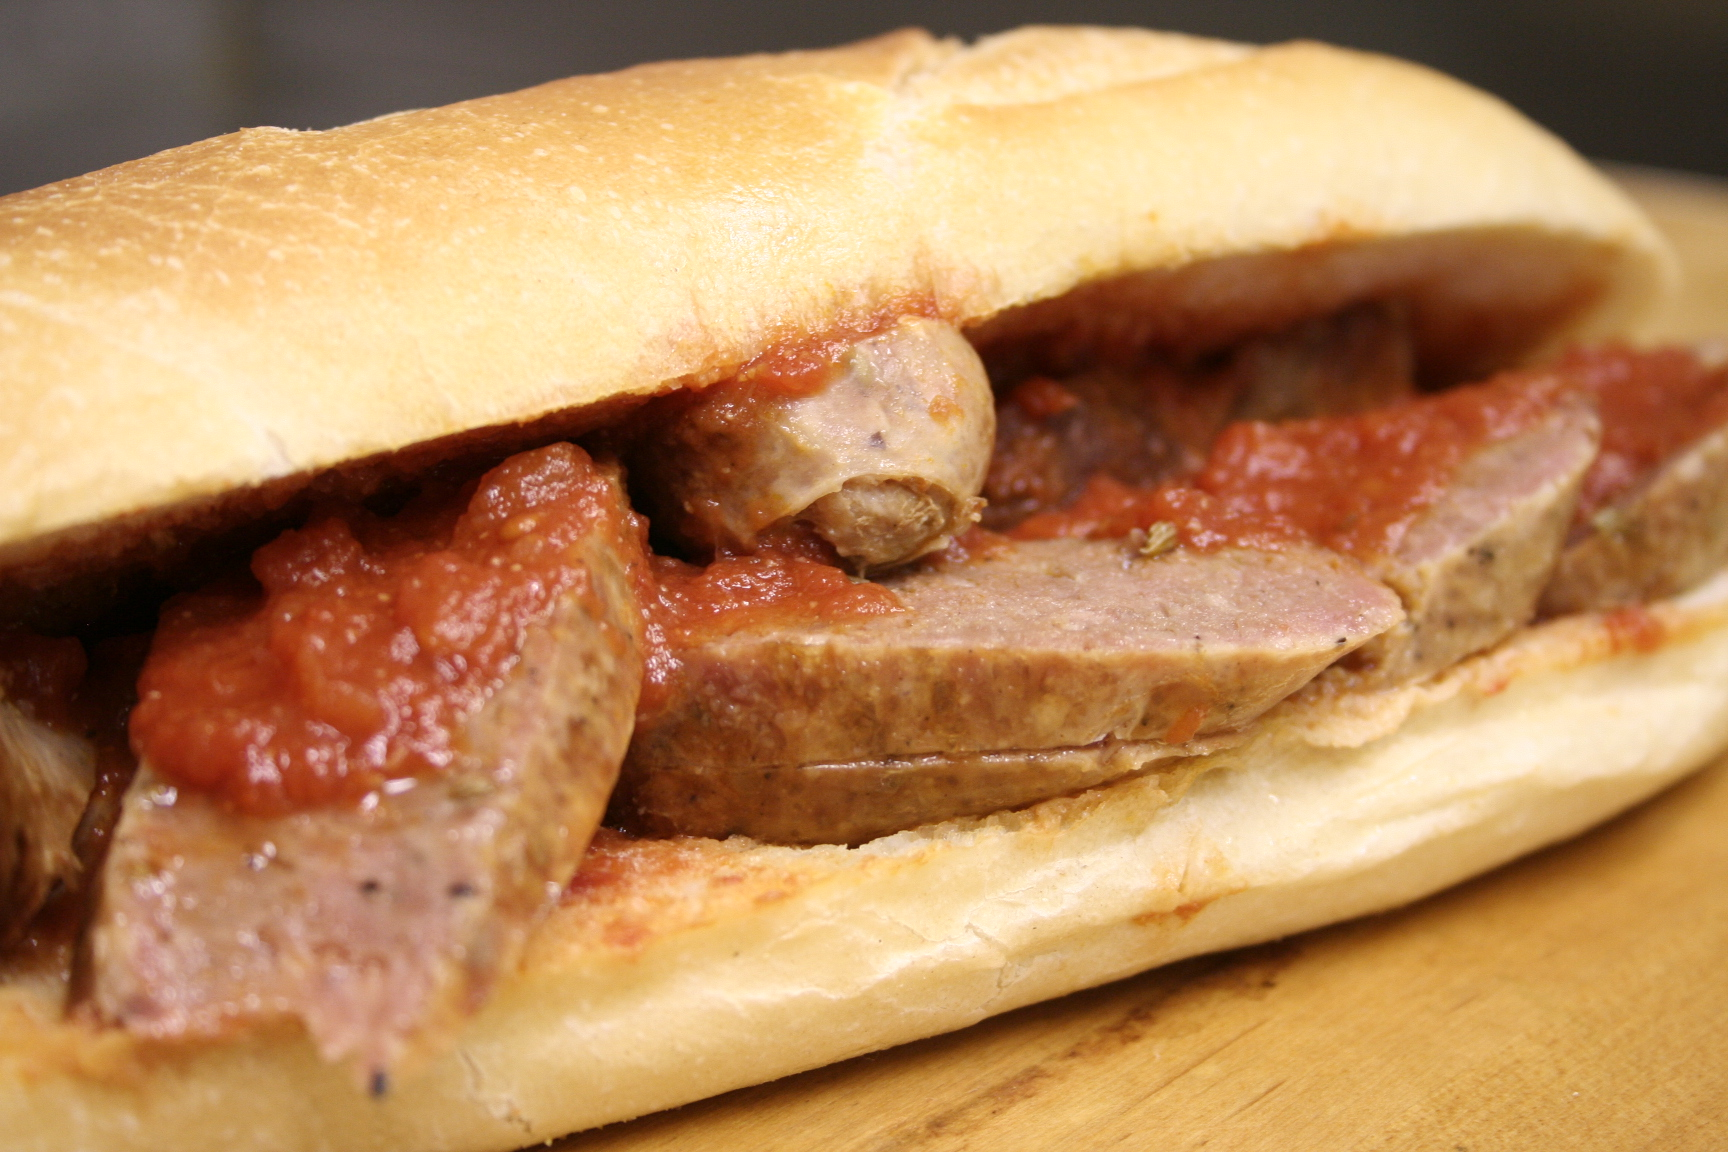 Sandwich with sausage and red sauce